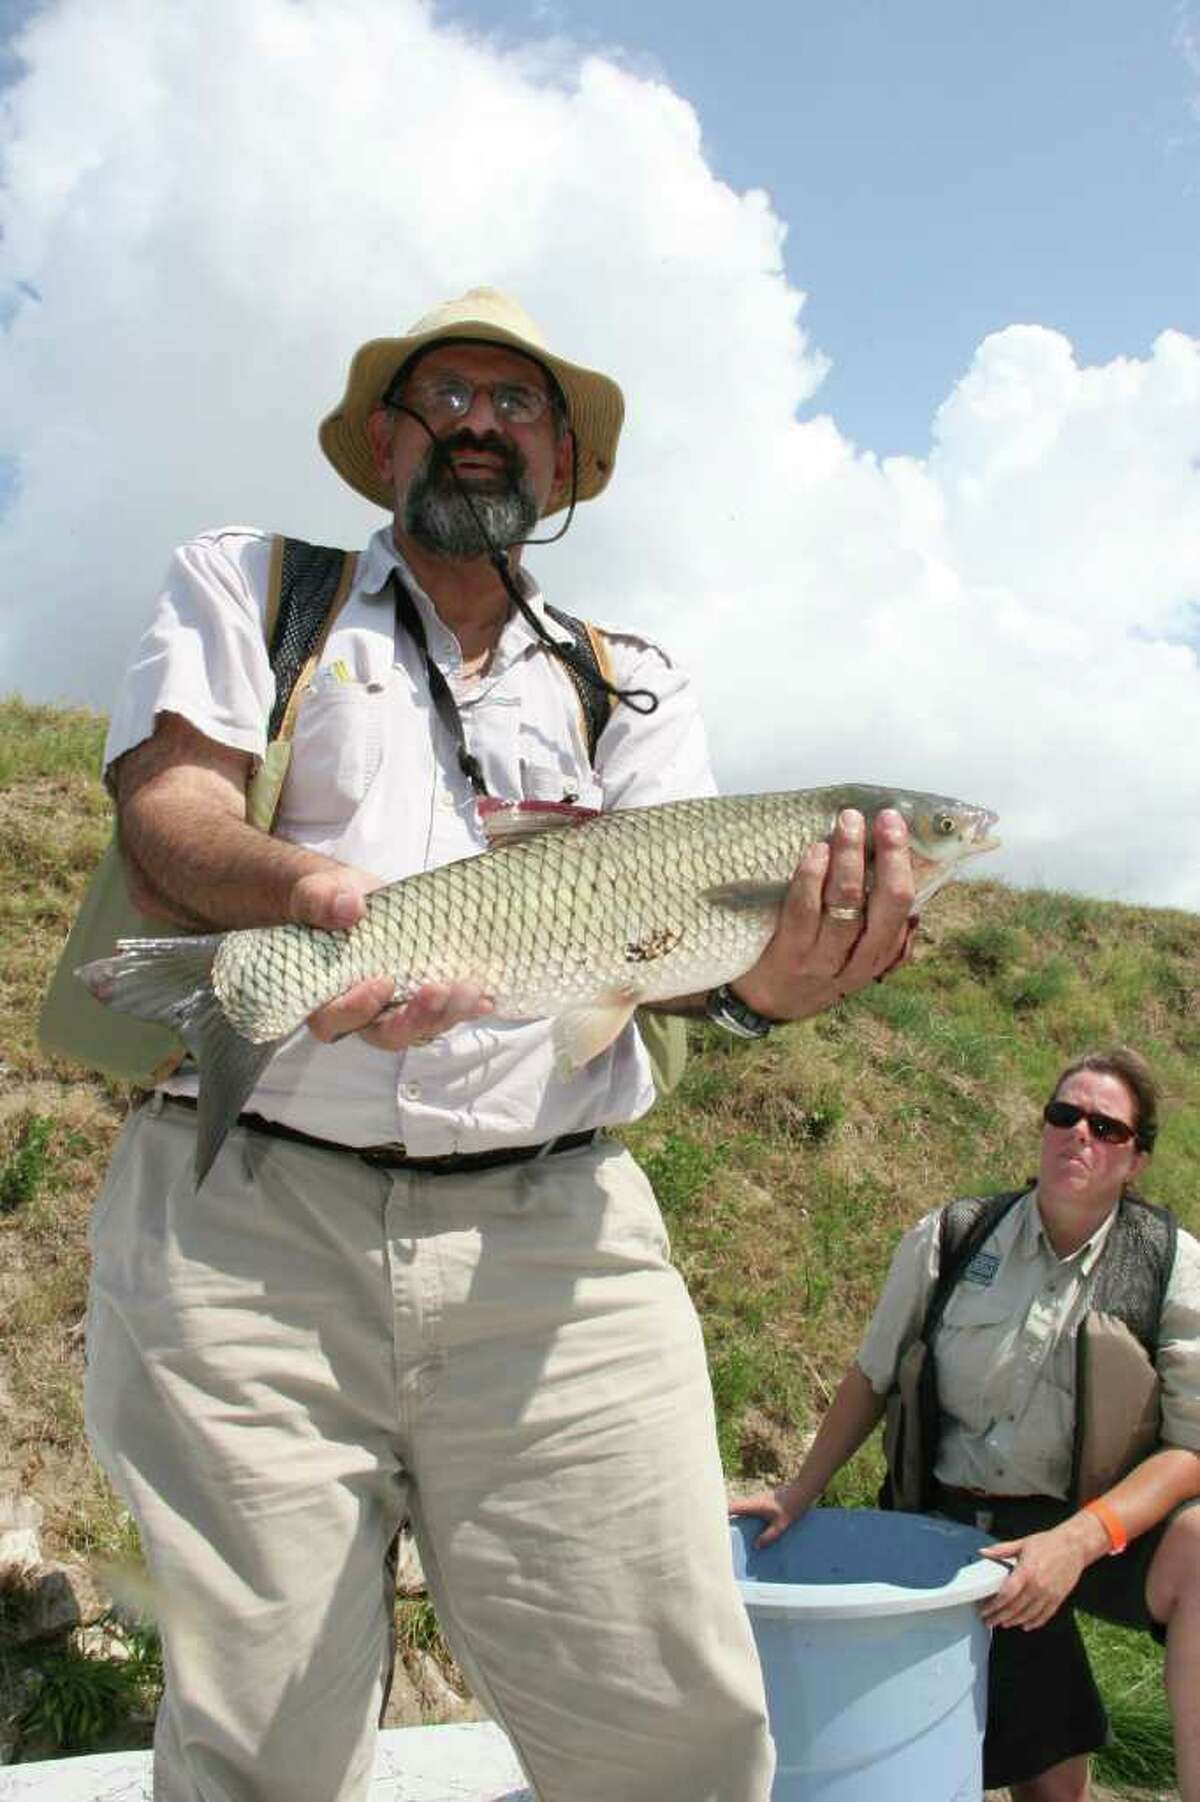 Dr. George Guillen, professor of biology and environmental science at University of Houston-Clear Lake, holds a white amur, or Asian grass carp. Grass carp are native to China but have been introduced throughout the world as a means of weed control.